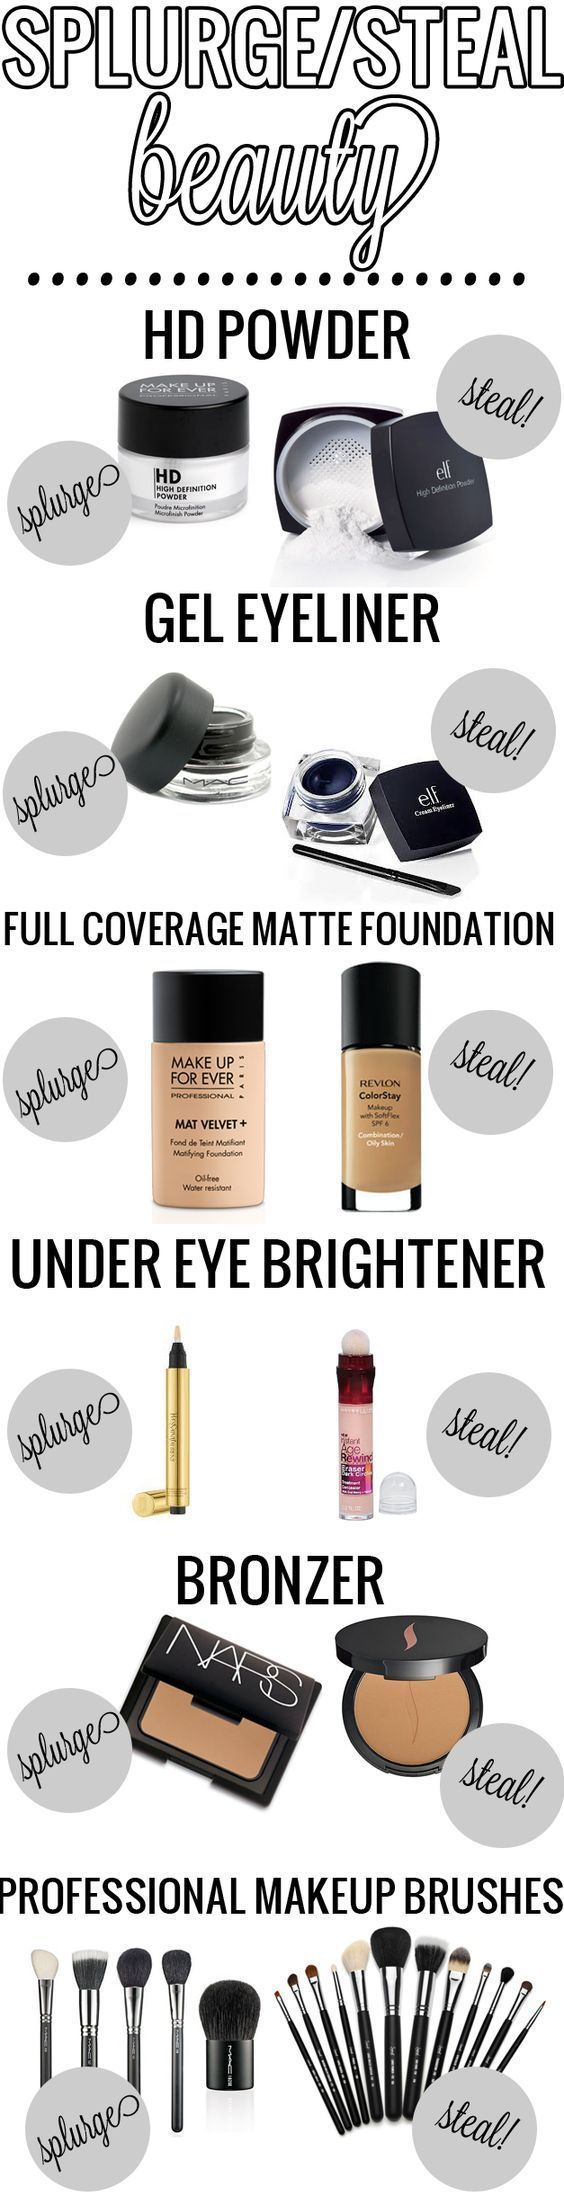 These 10 Makeup Dupe Hacks have saved me A TON OF MONEY! I use makeup regularly so this post is GREAT! So HAPPY I found this!